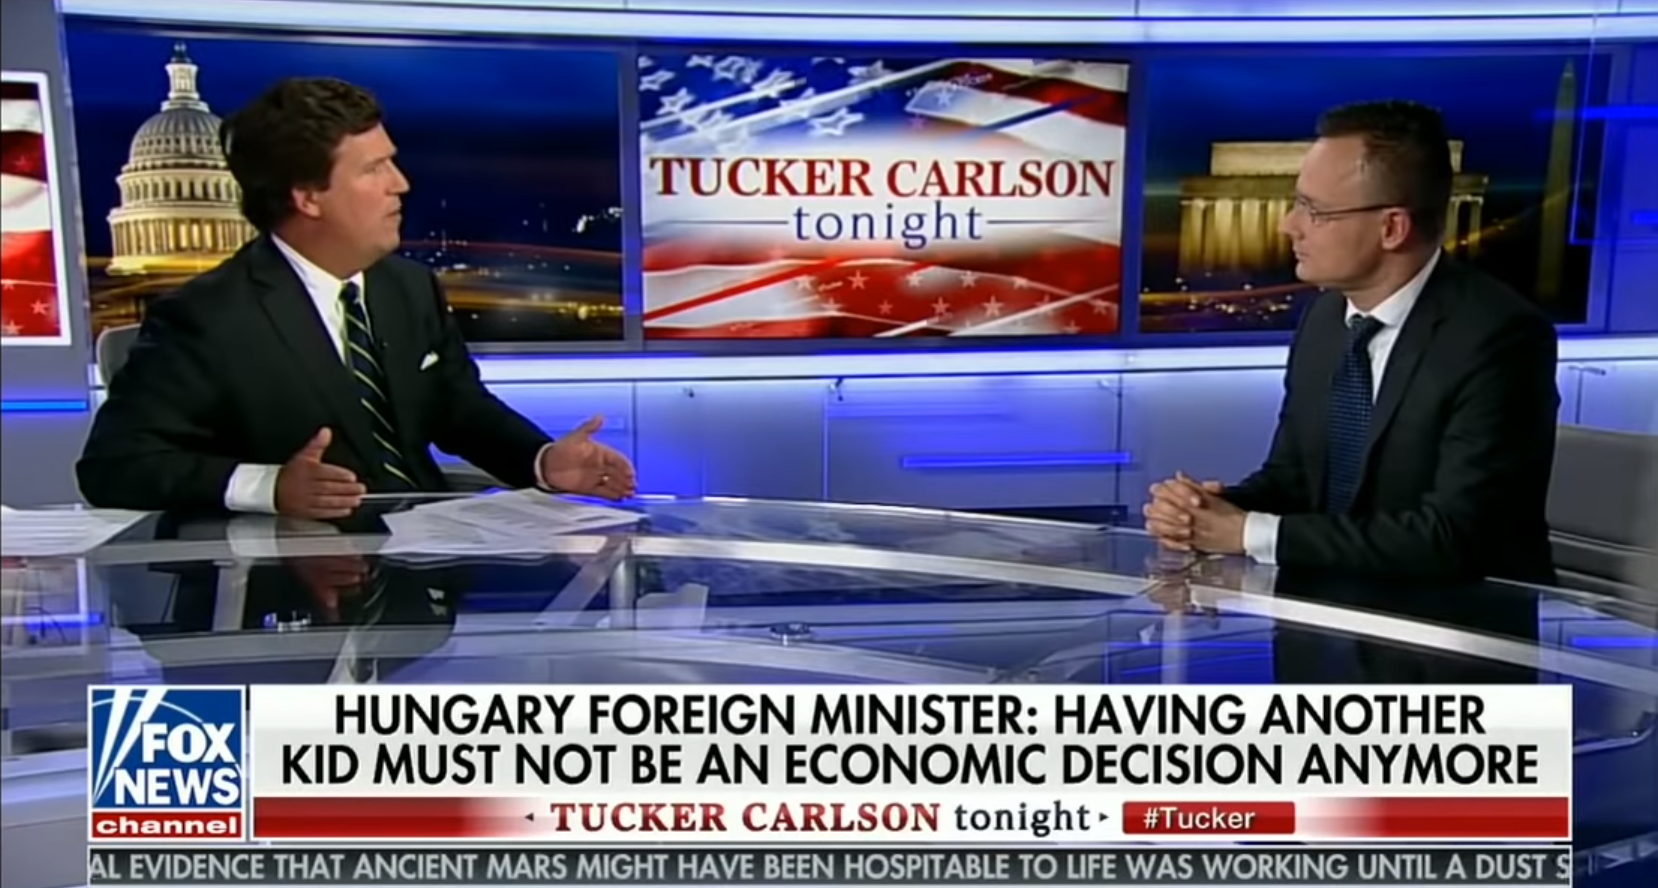 tuckler night Hungary USA family policy